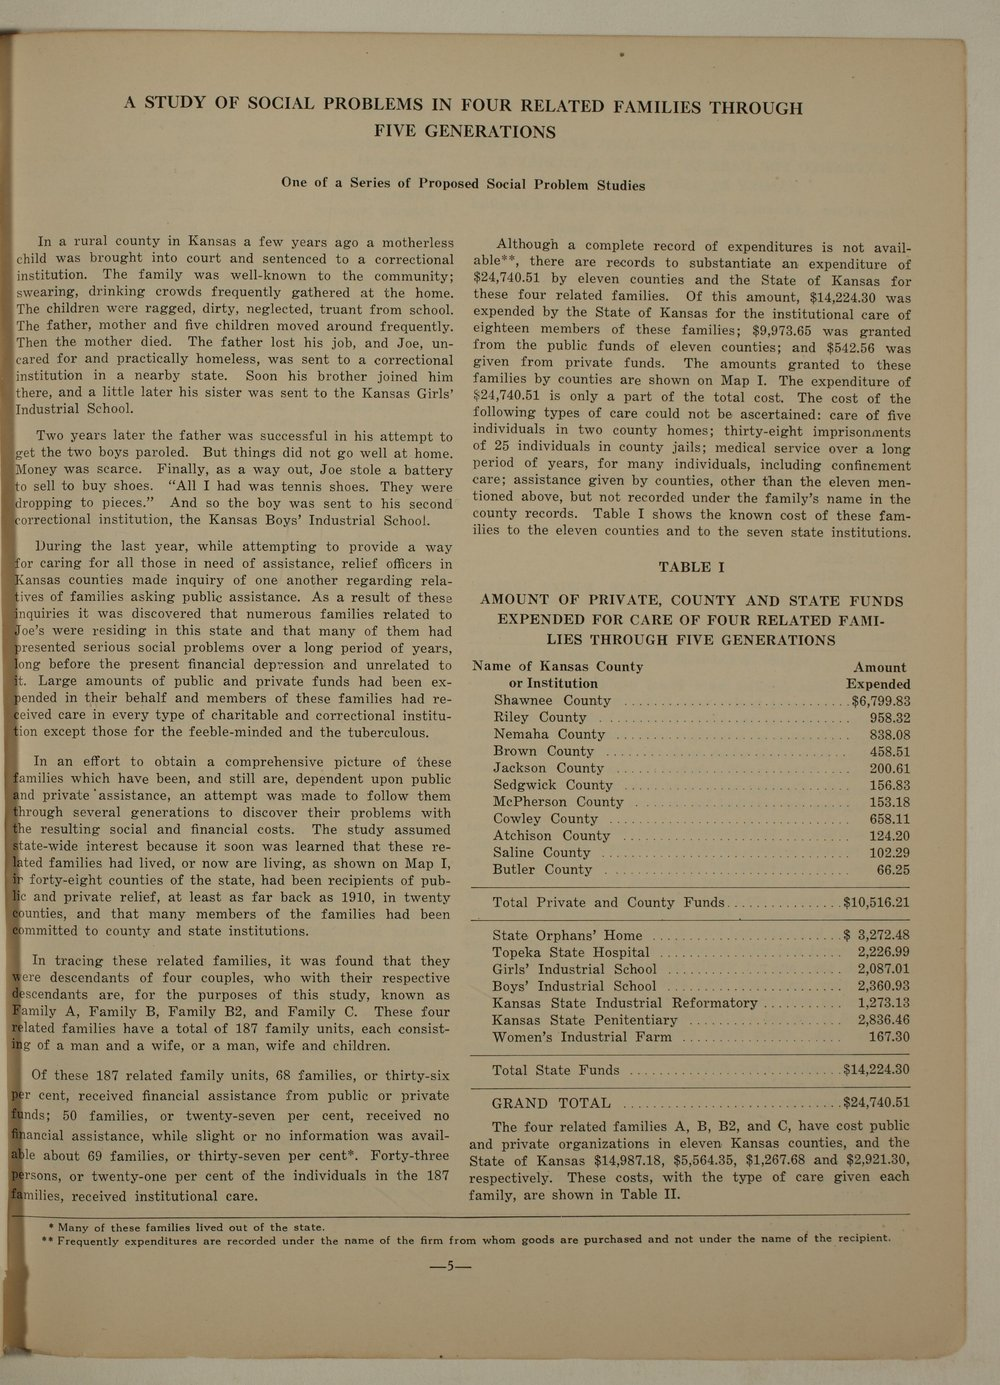 Kansas Emergency Relief Committee, bulletin 167 - 5